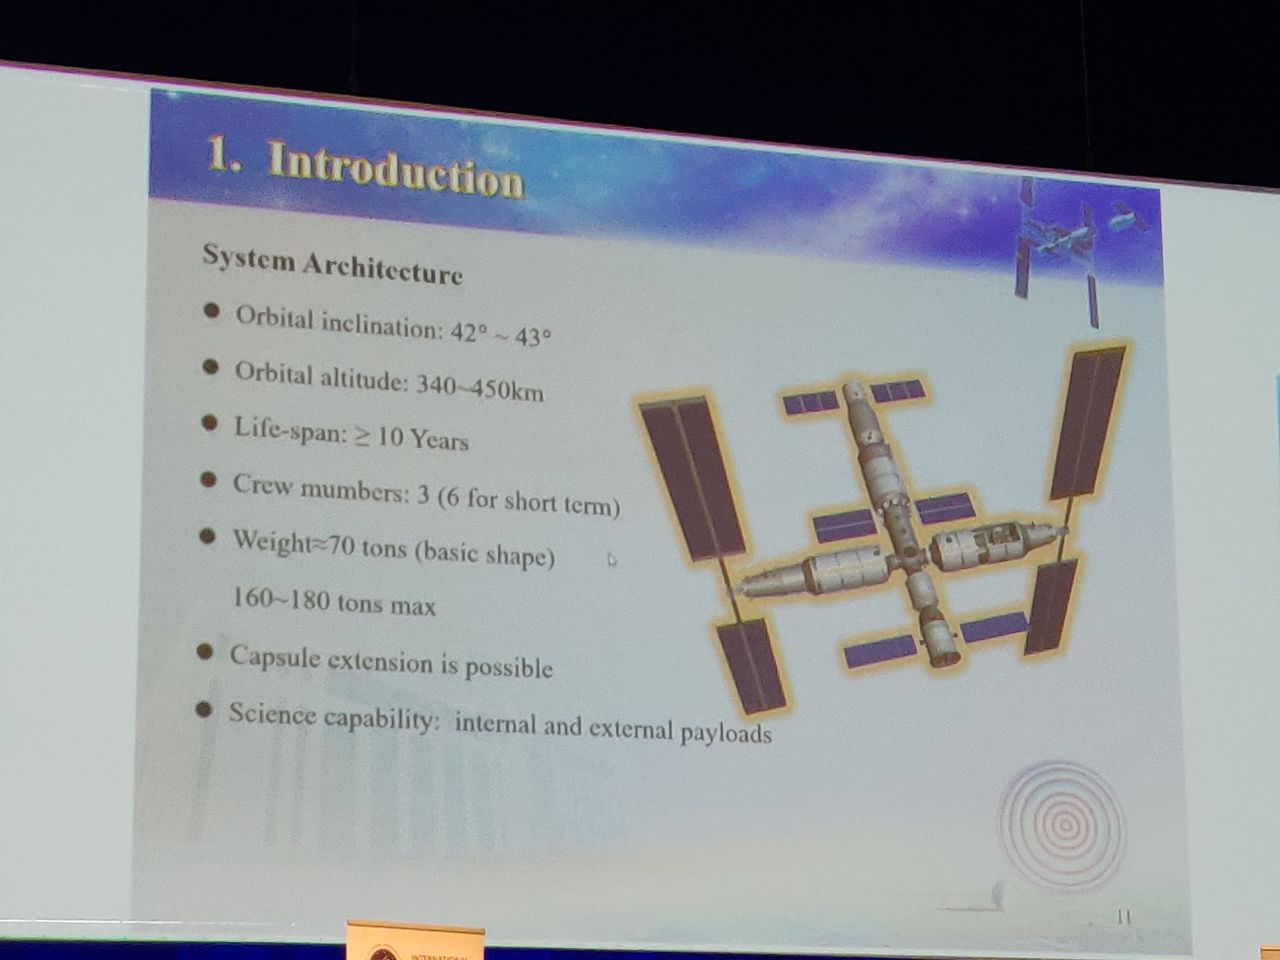 A slide detailing characteristics of the Chinese Space Station presented at IAC 2018.